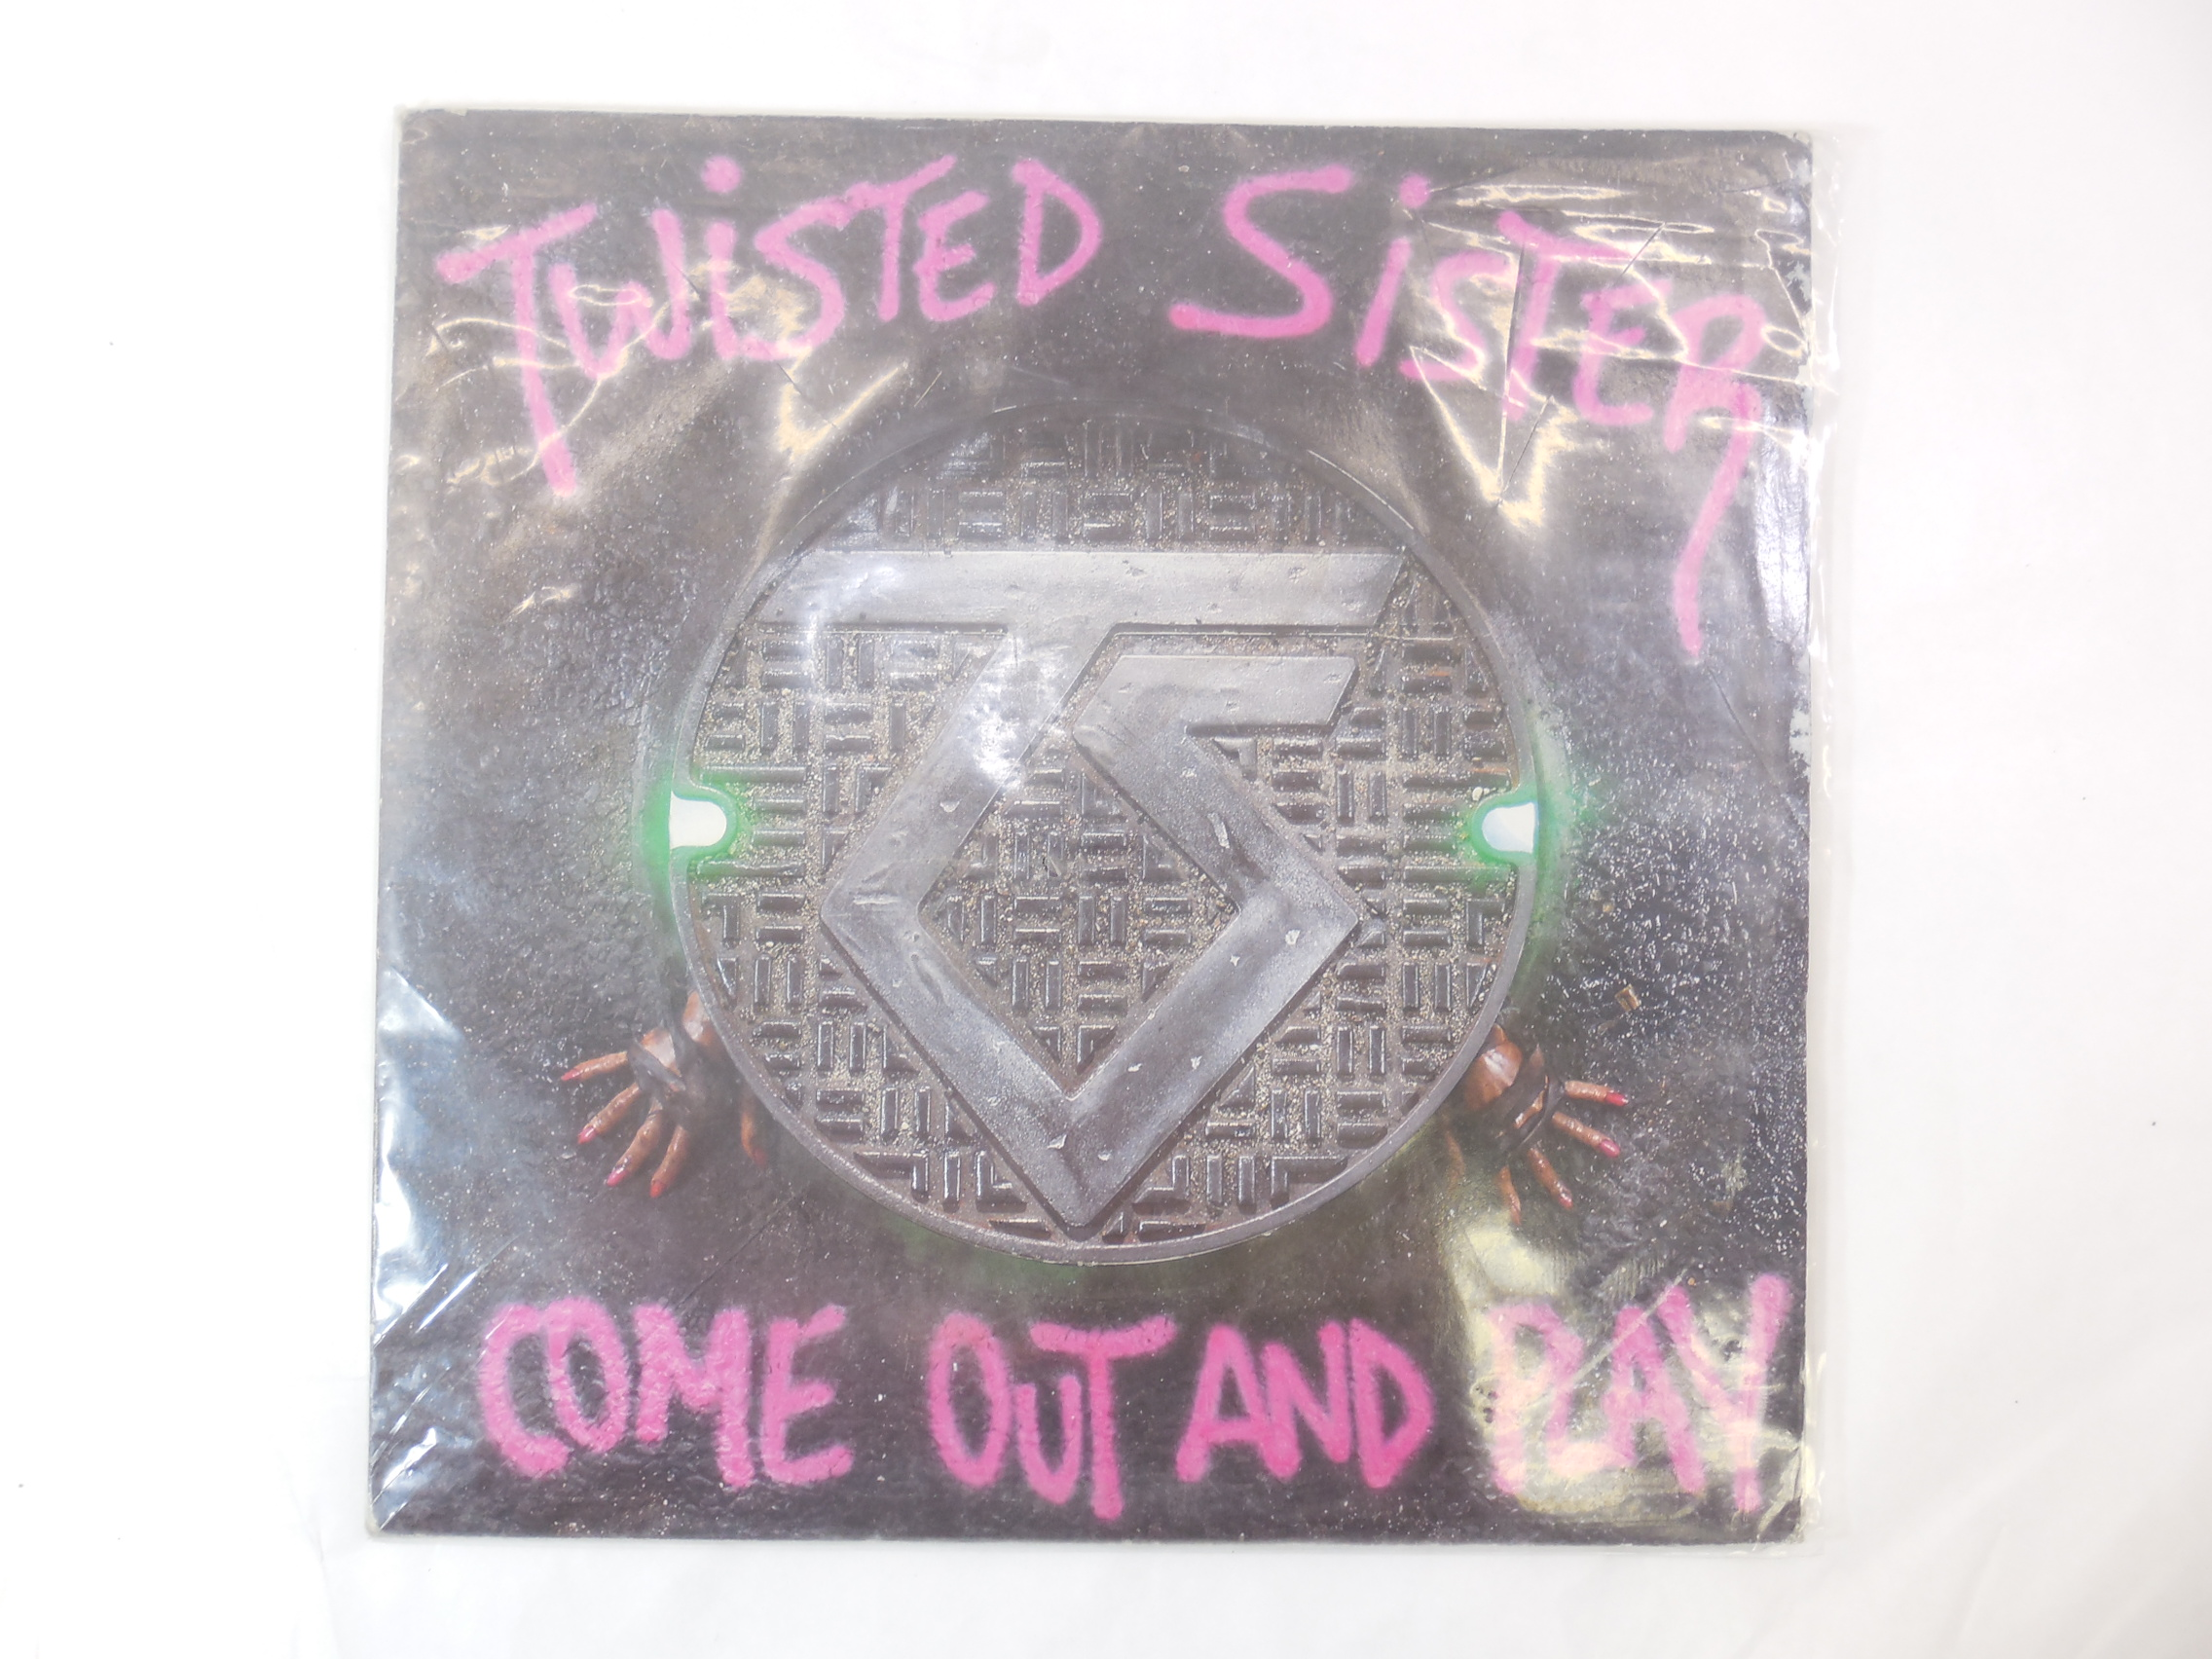 Пластинка Twisted Sister — Come out and play - Pic n 275313